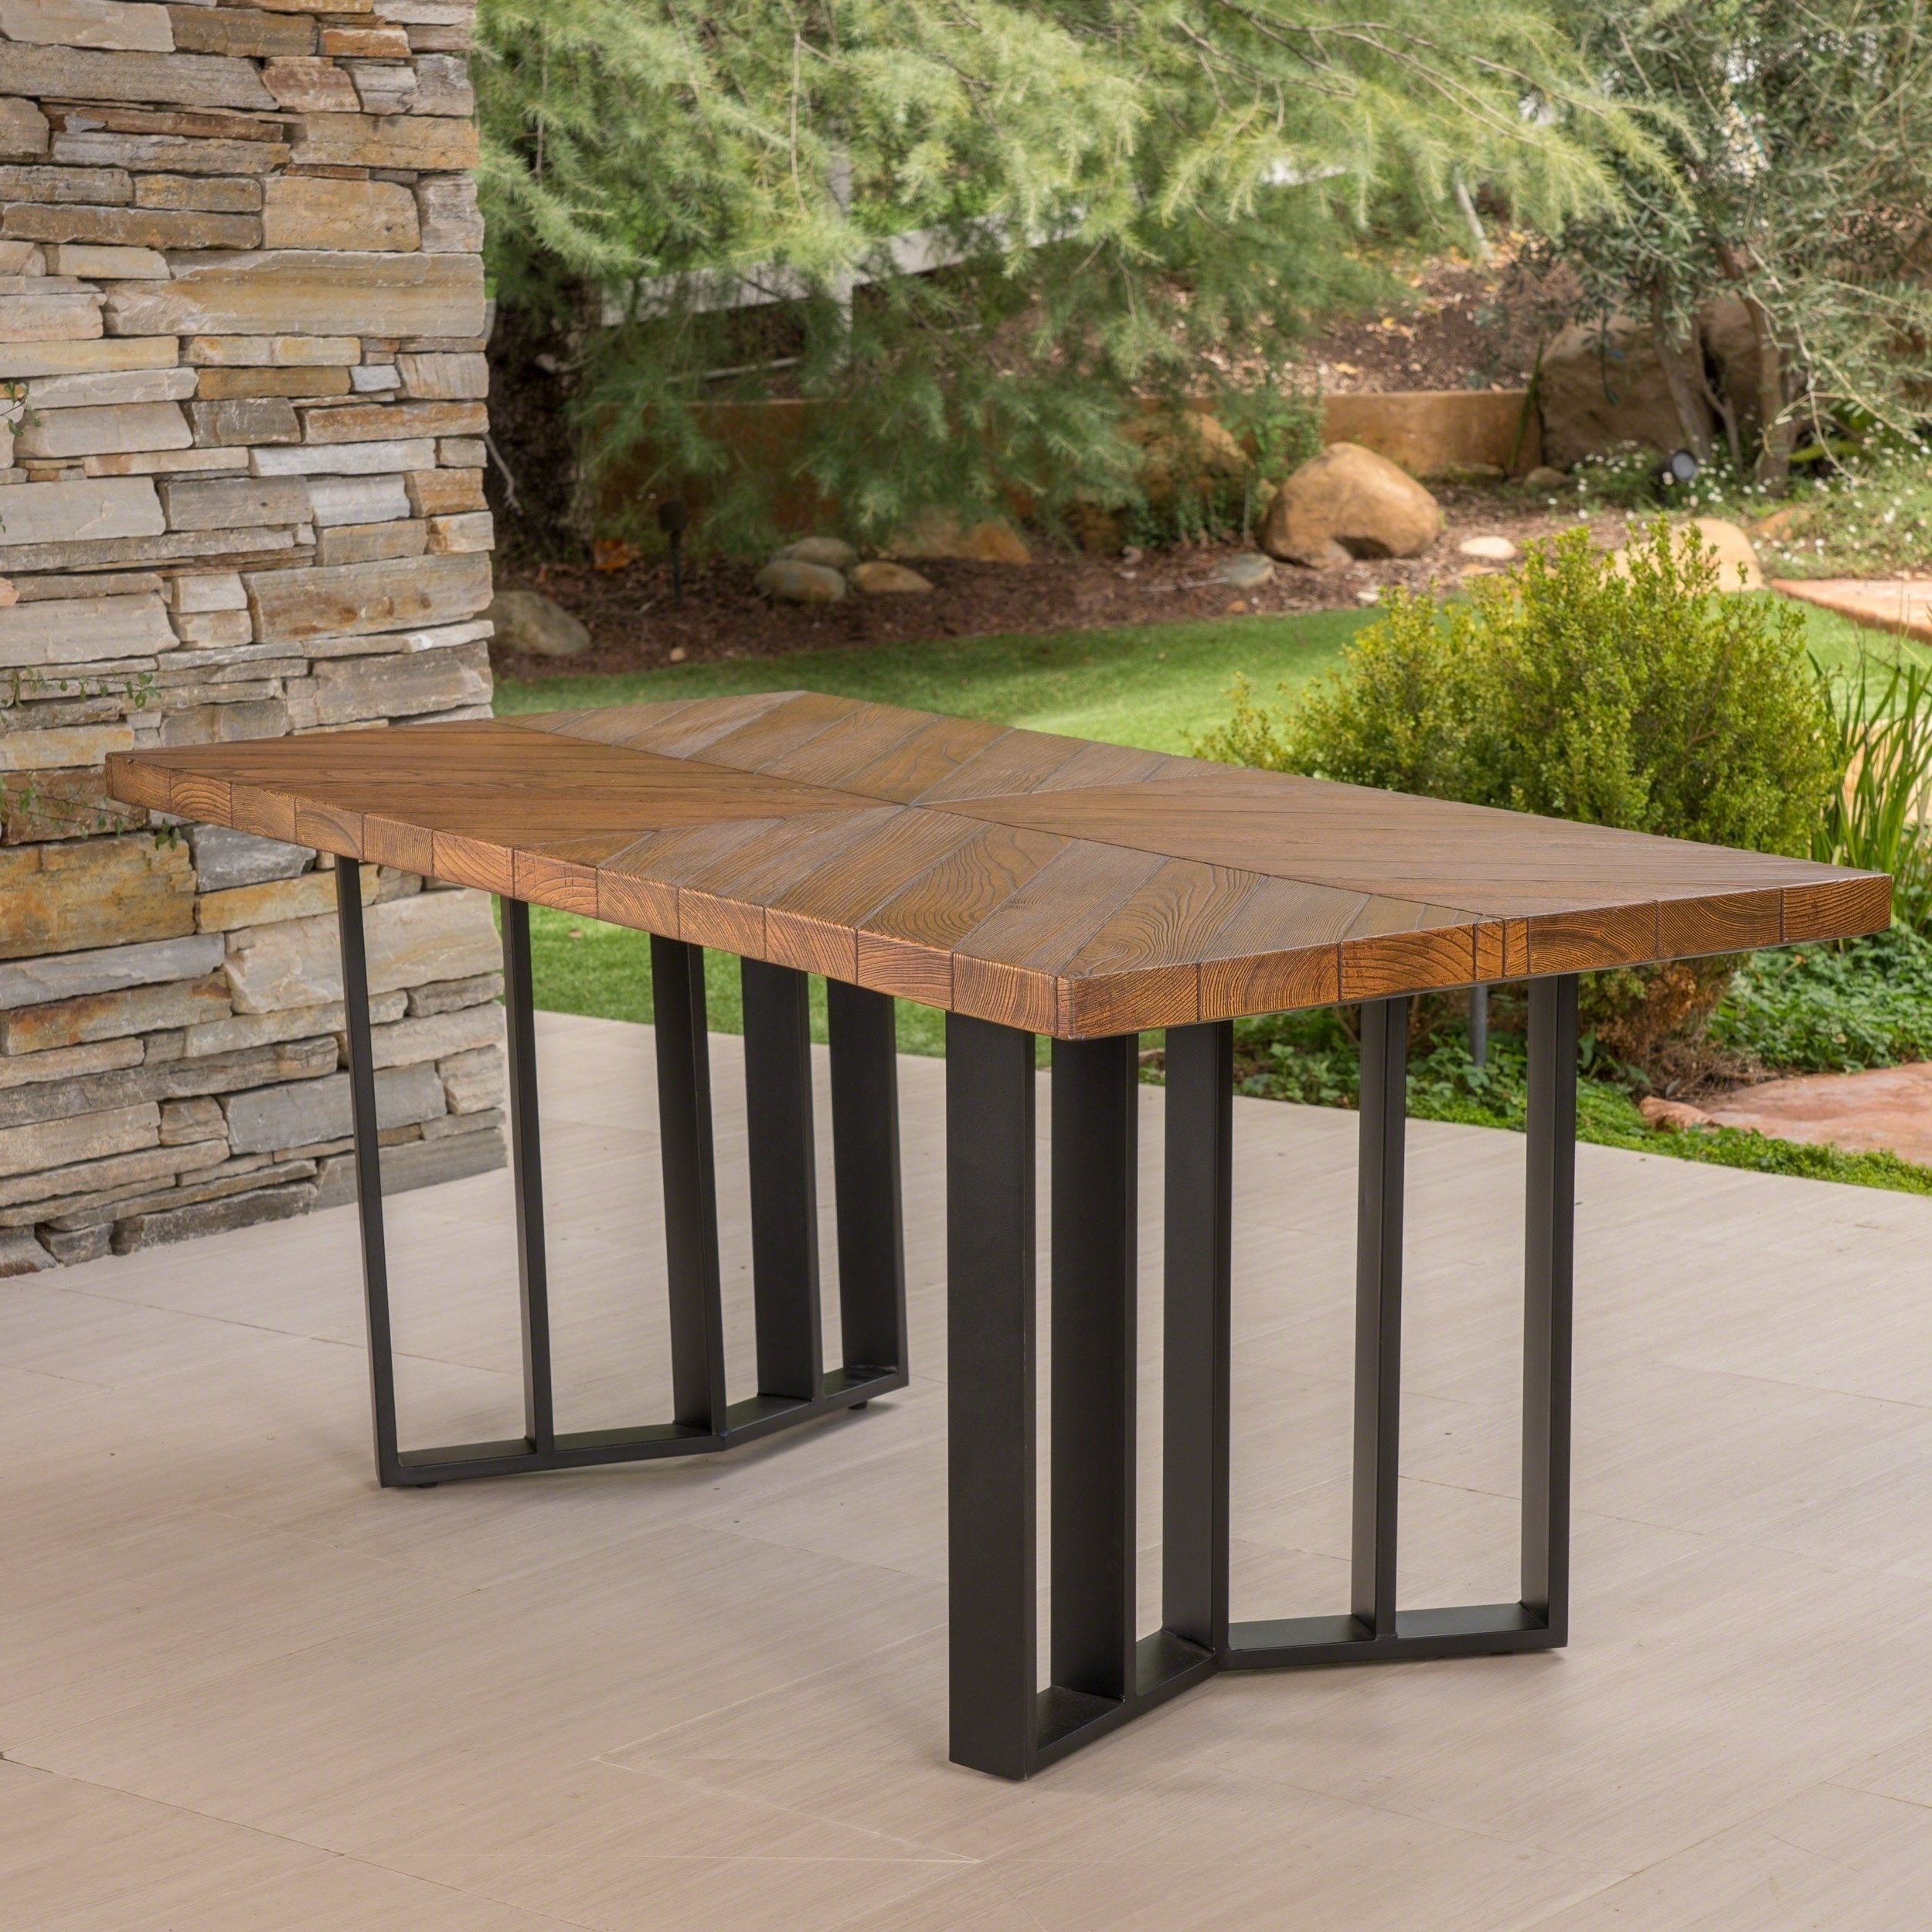 Verona Dining Tables For Widely Used Shop Verona Outdoor Rectangle Light Weight Concrete Dining Table (View 18 of 25)